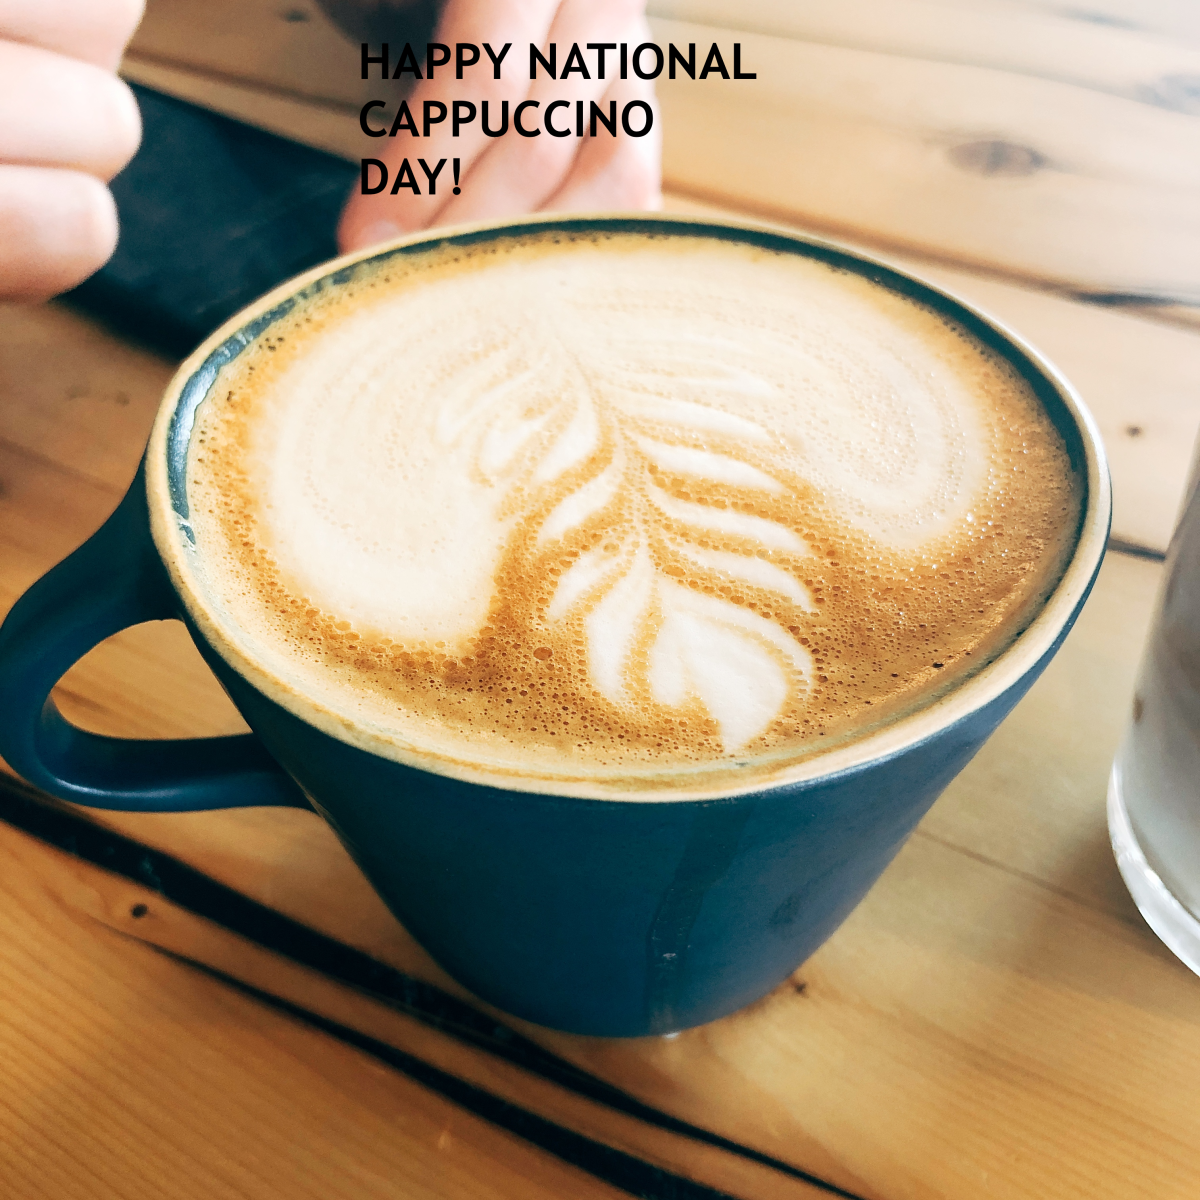 What Is National Cappuccino Day?